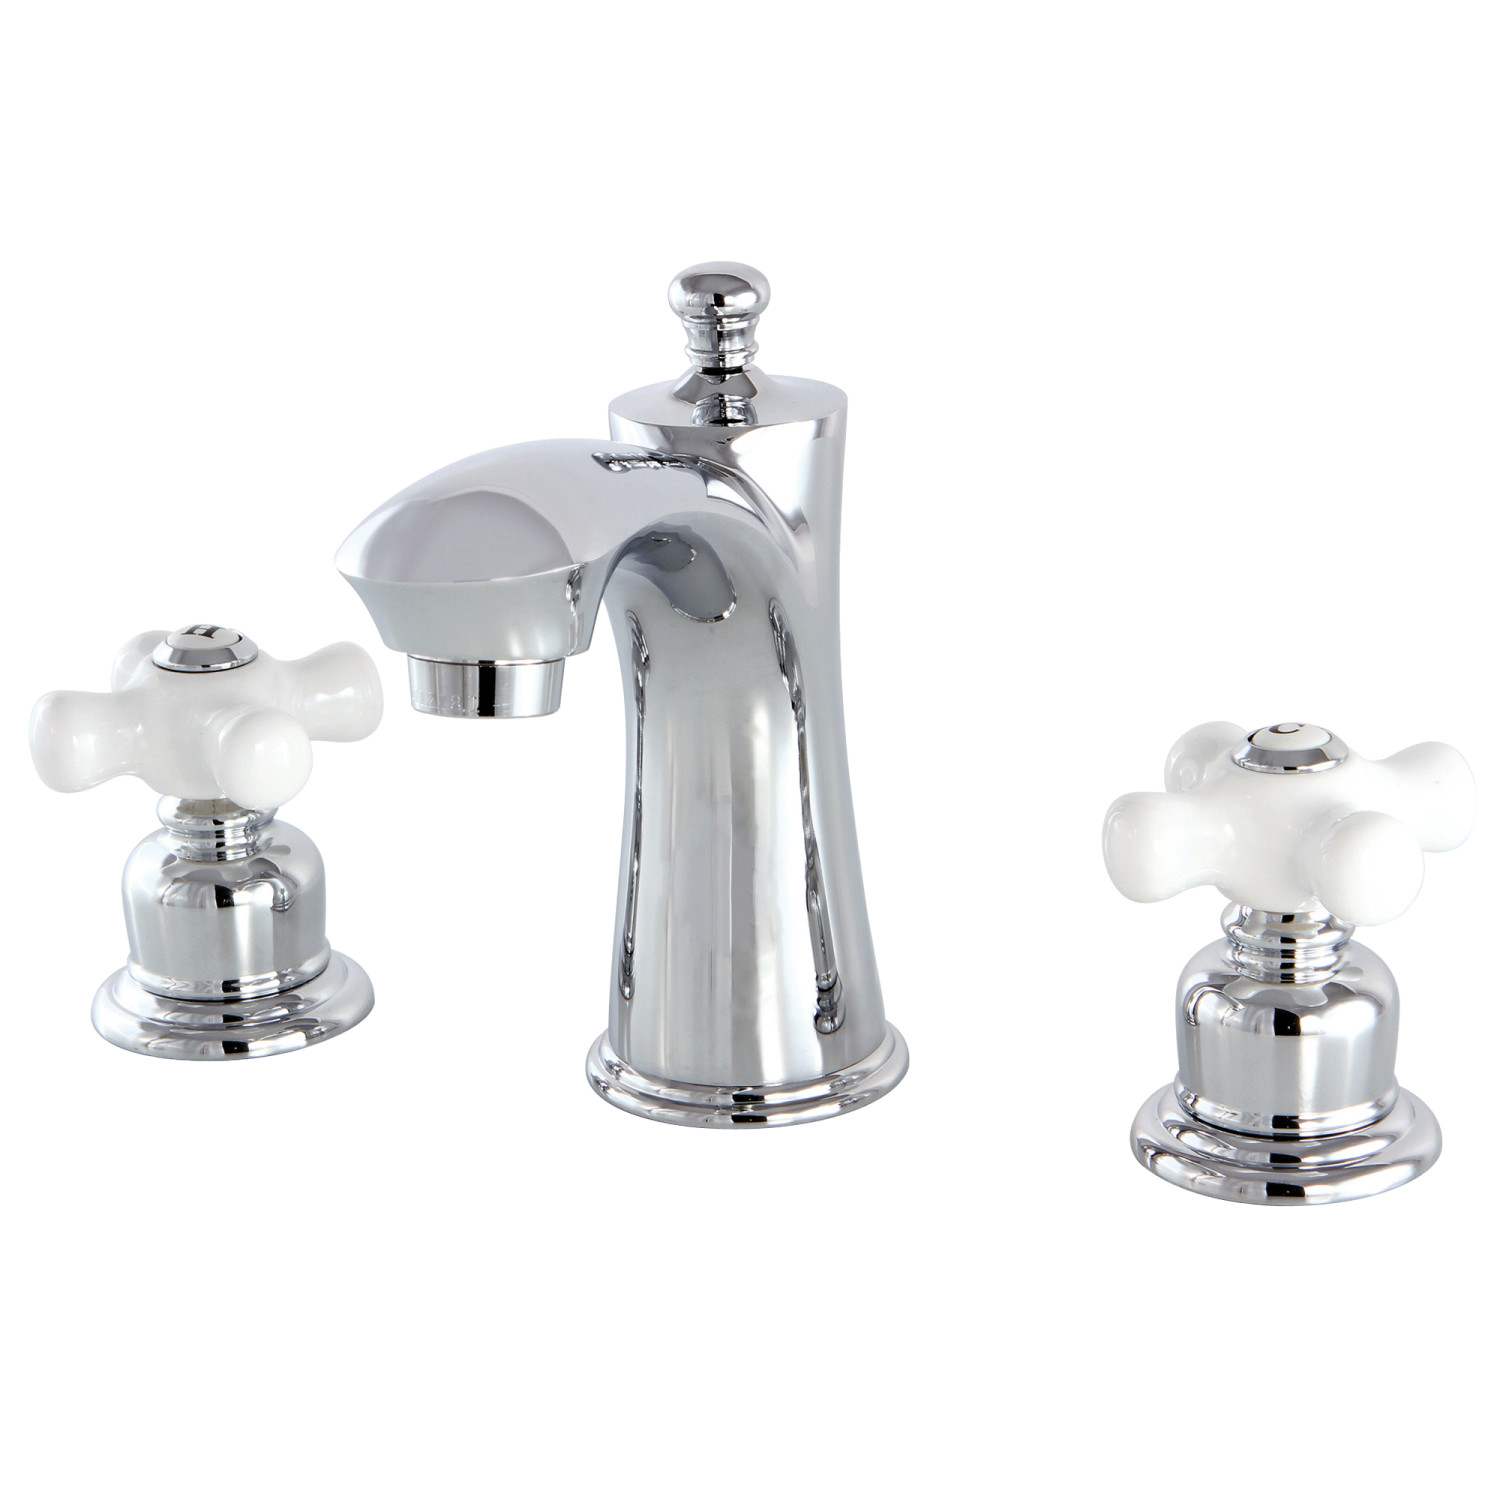 Vintage Two-Handle 3-Hole Deck Mounted Widespread Bathroom Faucet with Plastic Pop-Up in Polished Chrome Finish